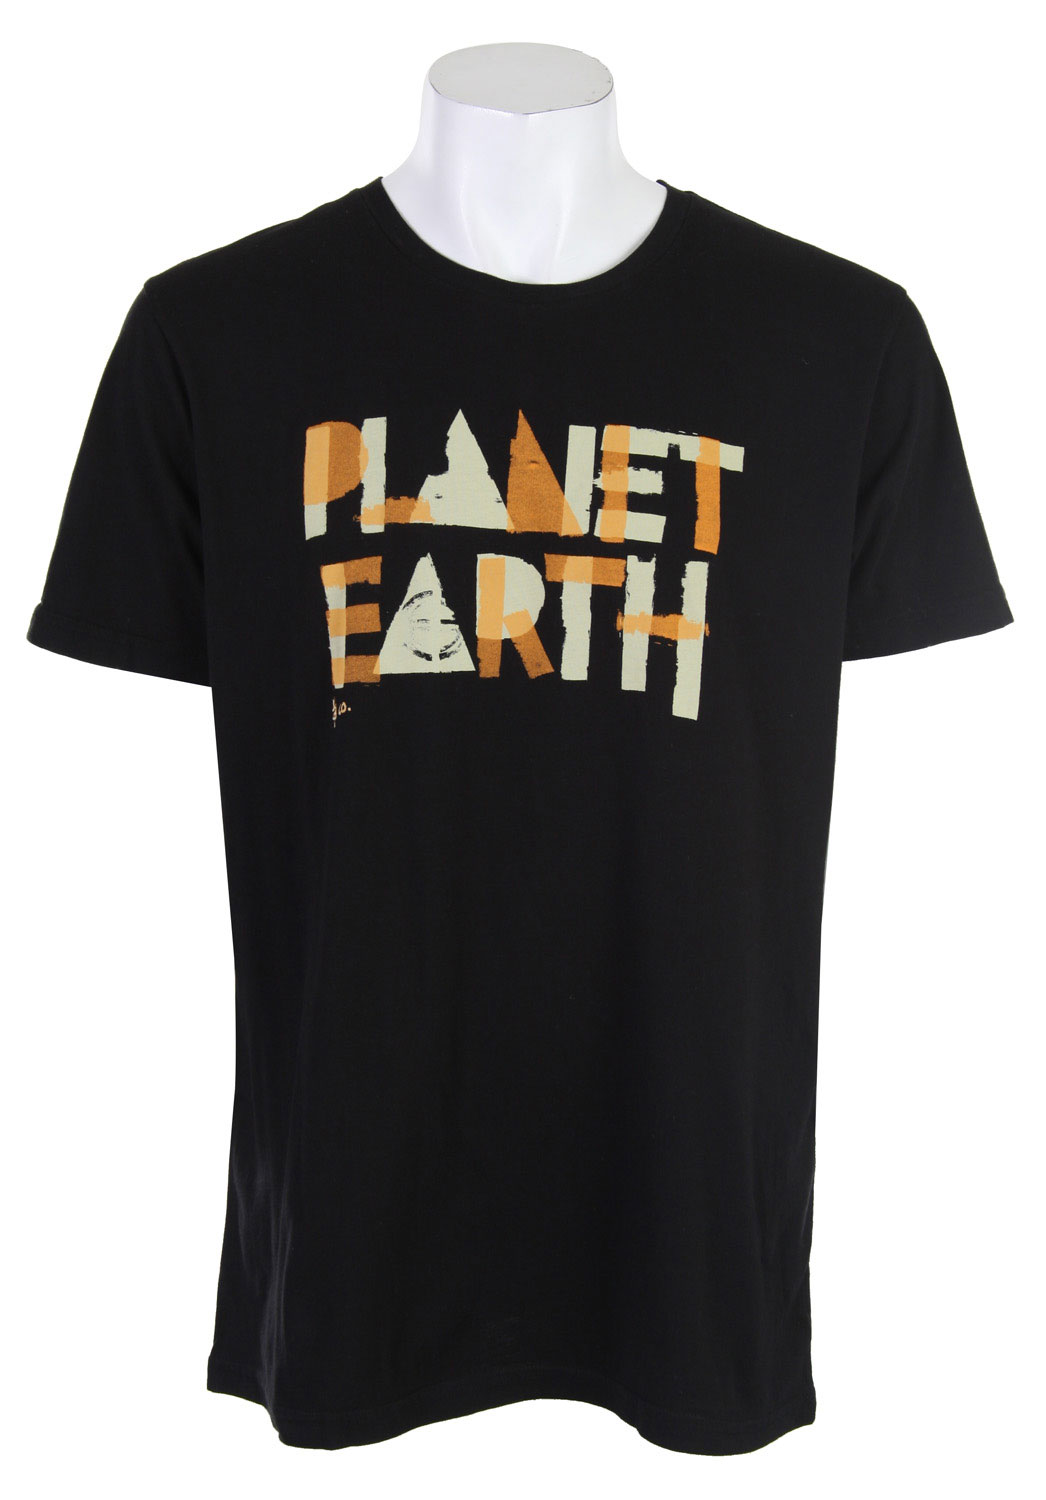 "This Planet Earth Harrison T-Shirt looks cool, with it's ""Planet Earth"" logo, framed in 100% Organic Cotton, but the real 'cool' thing is that each and every one of Planet Earth's designs and products are eco-friendly. By wearing this shirt you not only look great, but support a great cause. Planet Earth is bent on making sure that each and every product is hot and comfortable, and good for the planet. Now THAT is sexy.Key Features of the Planet Earth Harrison T-Shirt Black:  100% Organic Cotton - $13.95"